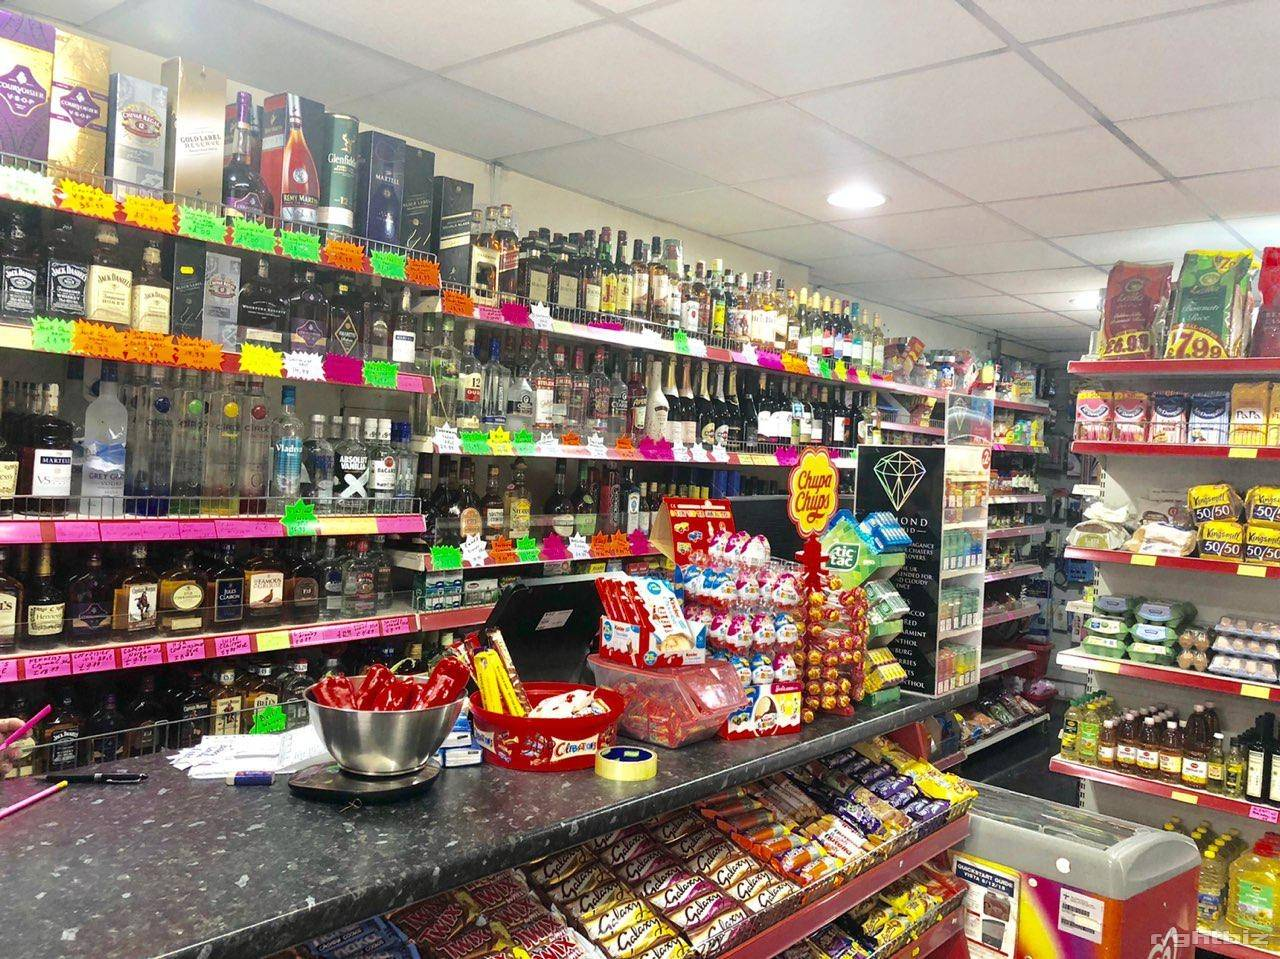 Off License & Grocery for Sale in Goodmayes Ilford IG3 9UN - Image 8